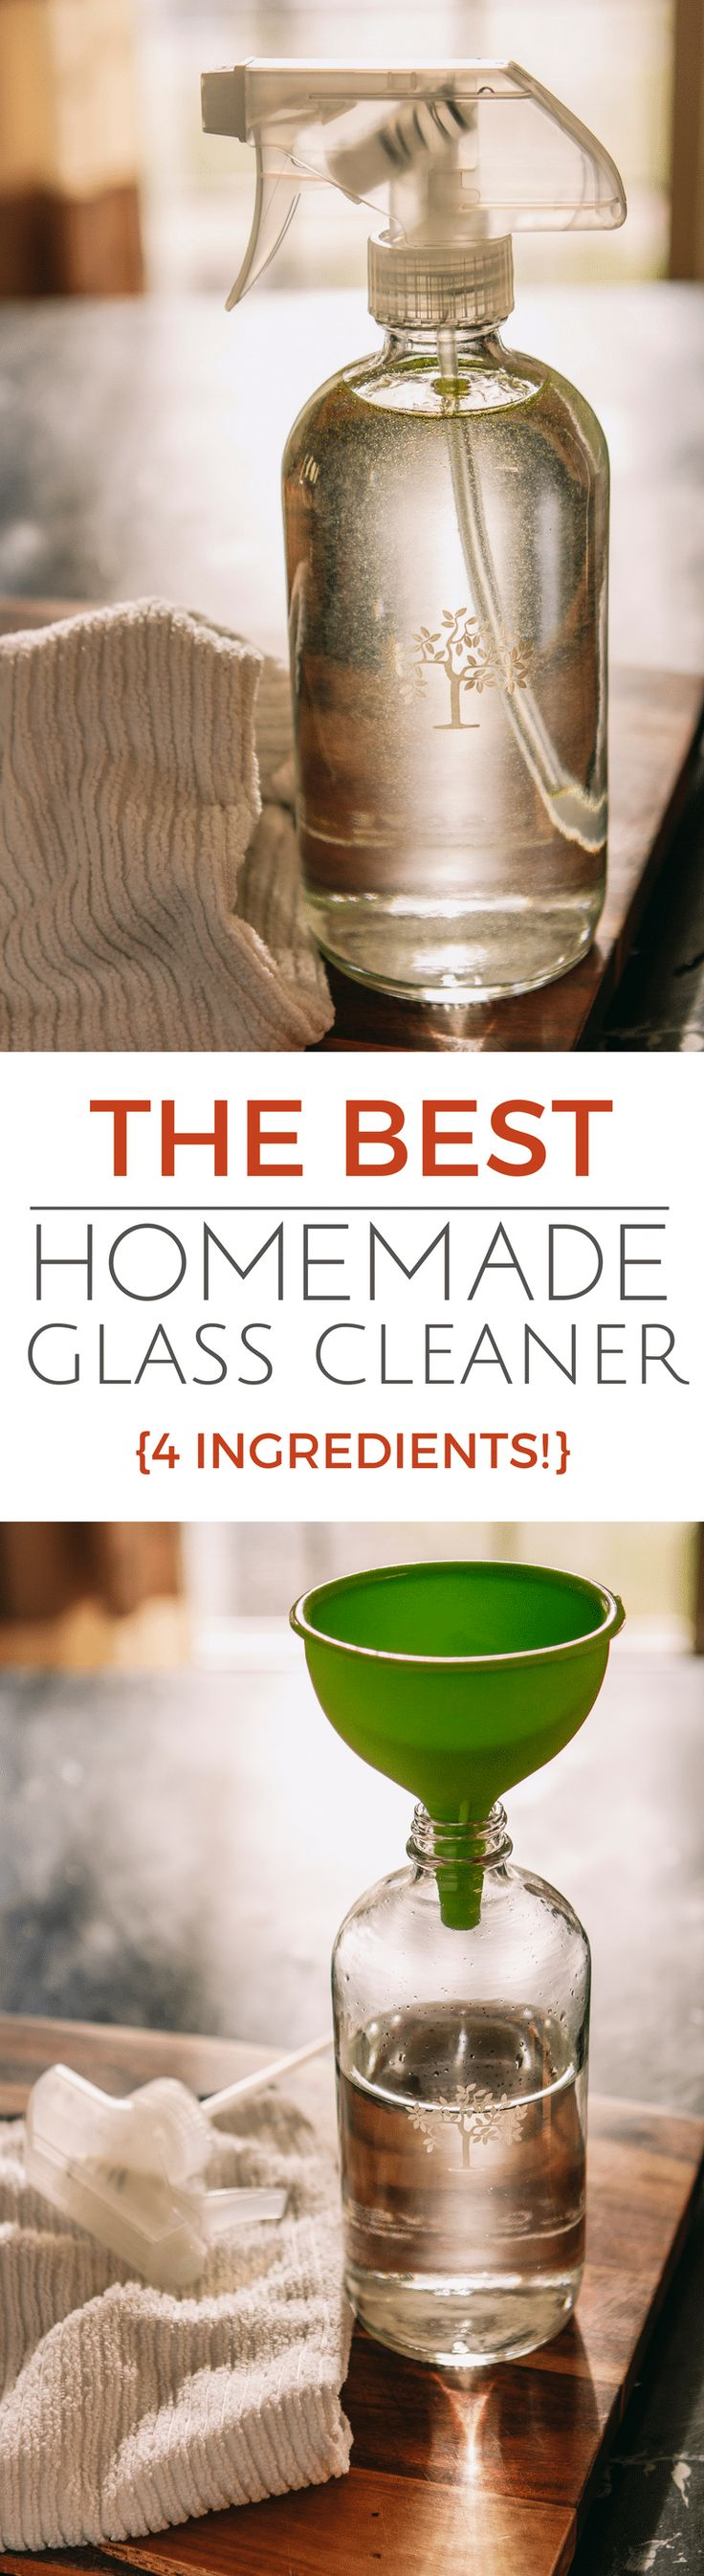 The Best Homemade Glass Cleaner {4 Ingredients} -- truly the best dang homemade glass cleaner you will try… Easy, streak free & non-toxic AND it's just 4 ingredients!   diy glass cleaner   glass cleaner recipe   cleaning ideas   cleaning products   essential oil recipes   find the tutorial on unsophisticook.com